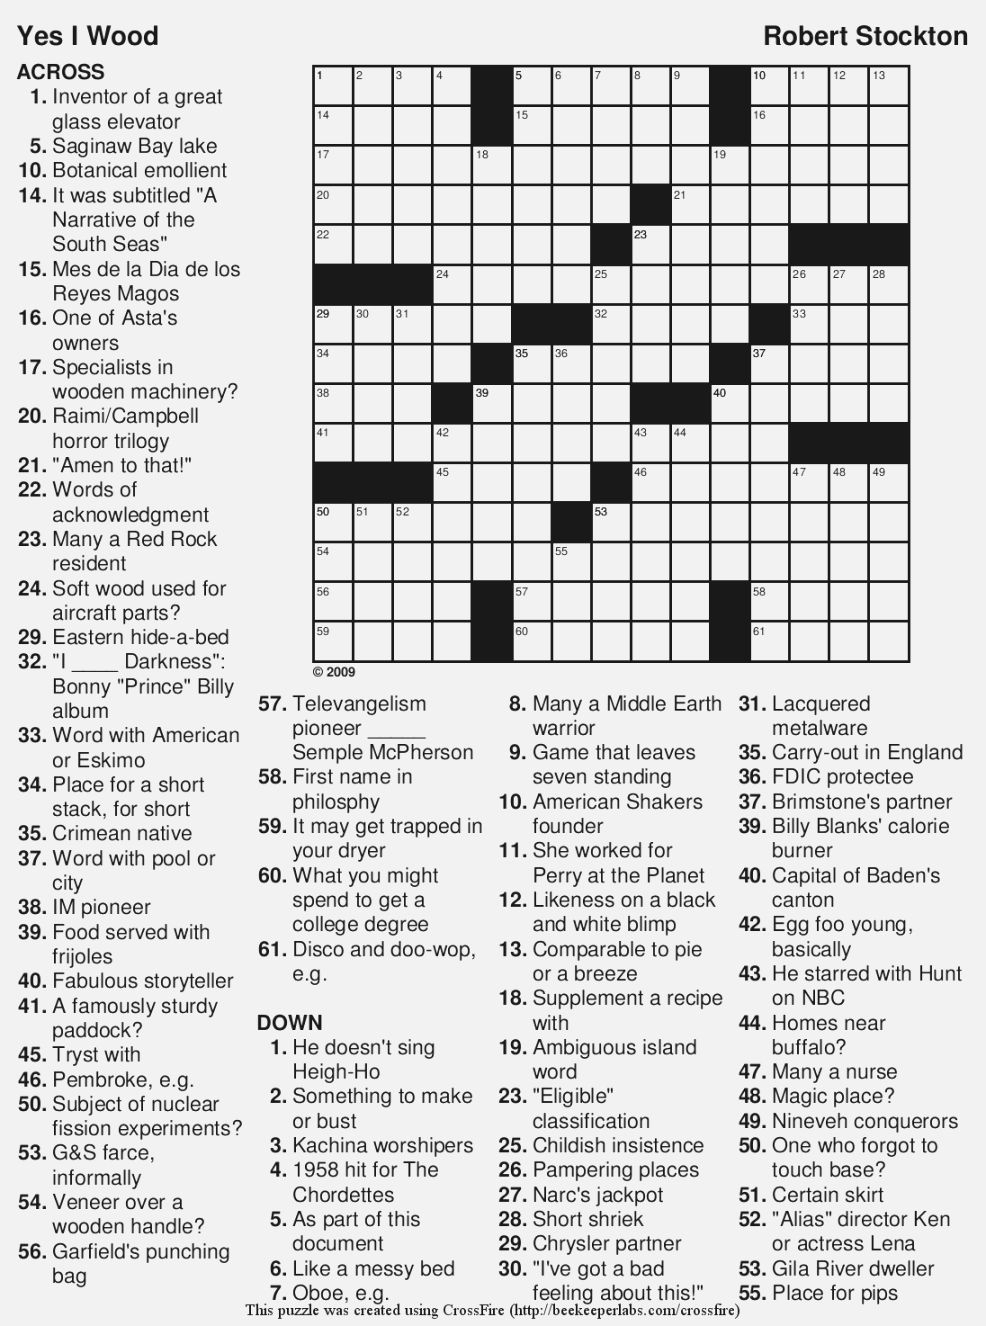 Large Print Puzzles For Seniors | M3U8 - Large Print Crossword Puzzles Visually Impaired